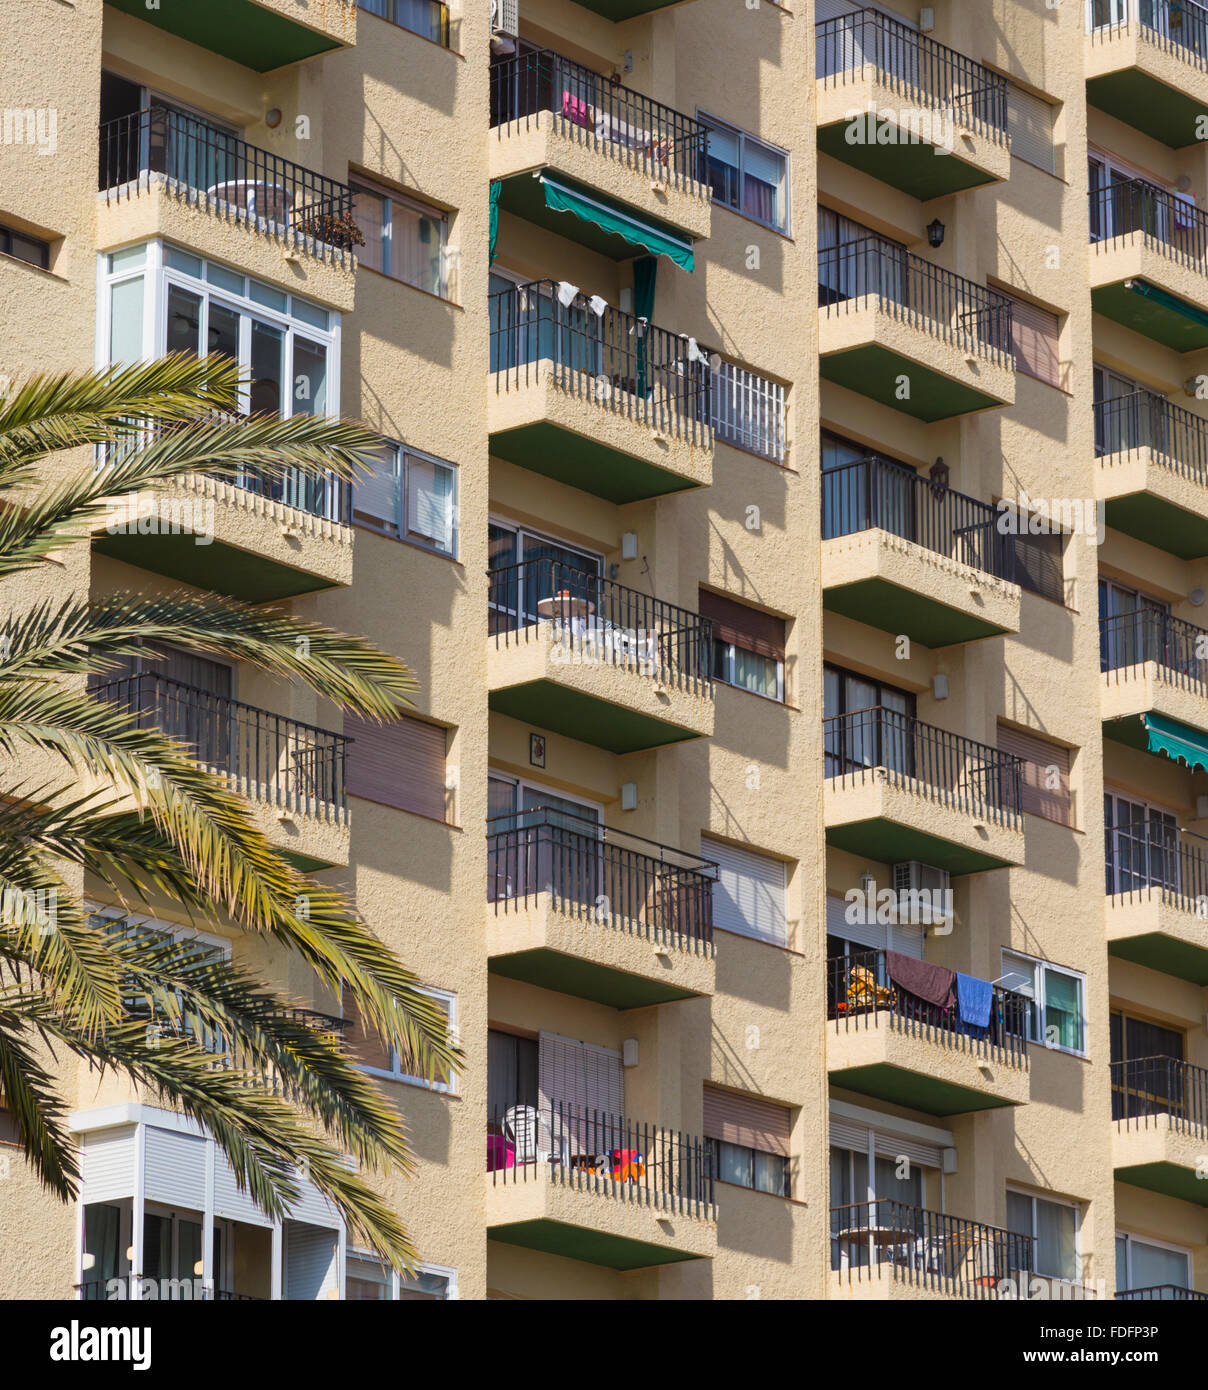 Fuengirola, Costa del Sol, Malaga Province, Andalusia, southern Spain. Balconies of an apartment block. - Stock Image